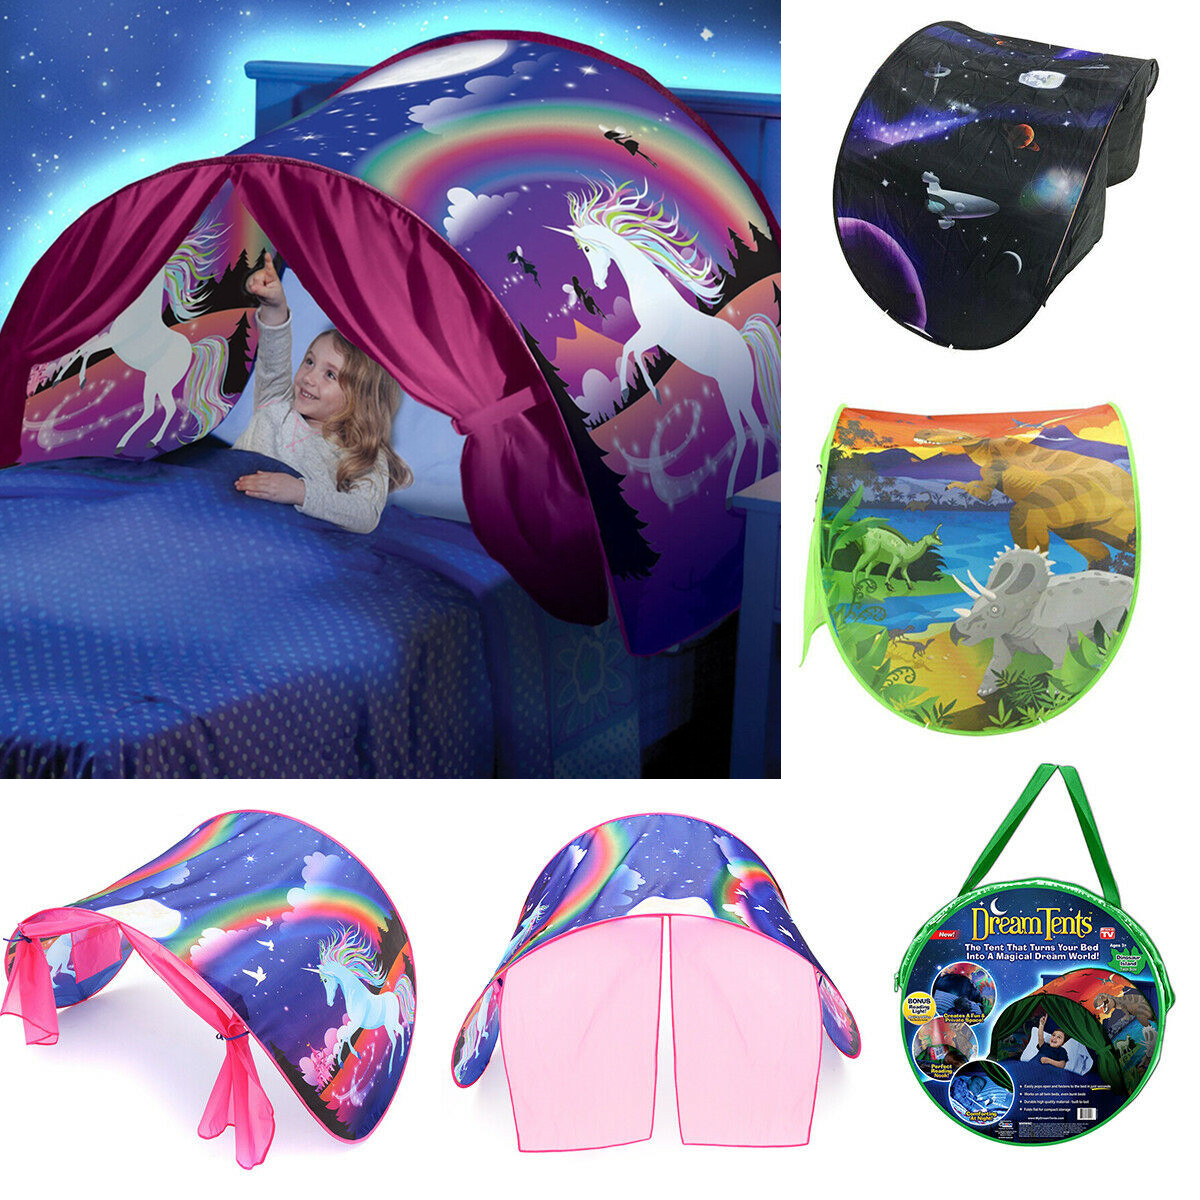 Details about Dream Tents Kids House Unicorn Foldable Tent Pop up Indoor Bed With Light Gift